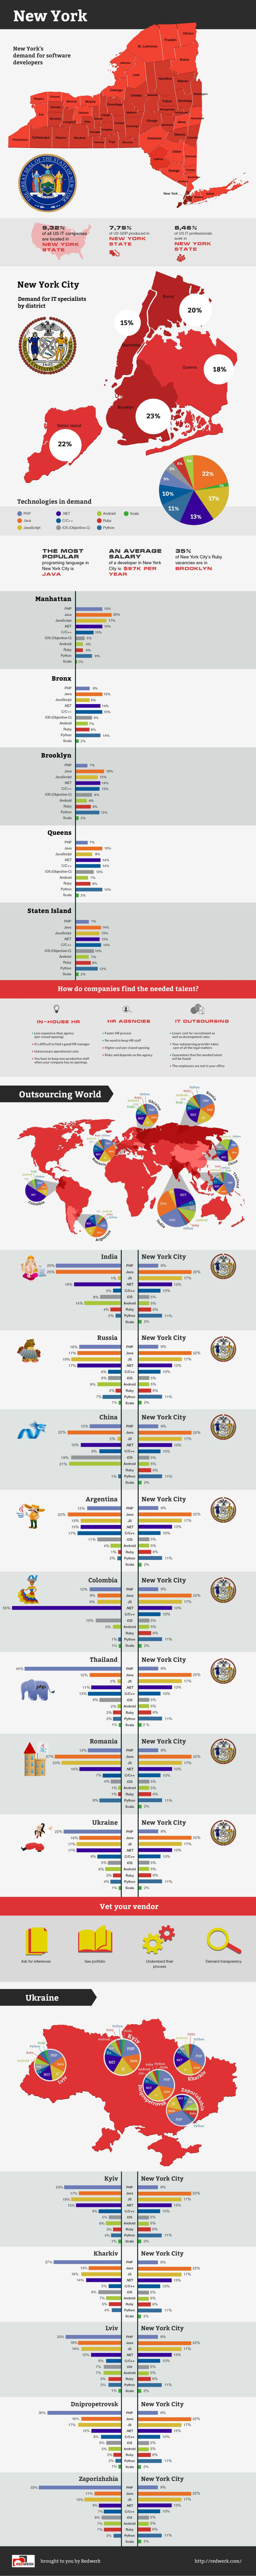 Demand for Software Developers: New York - Infographic